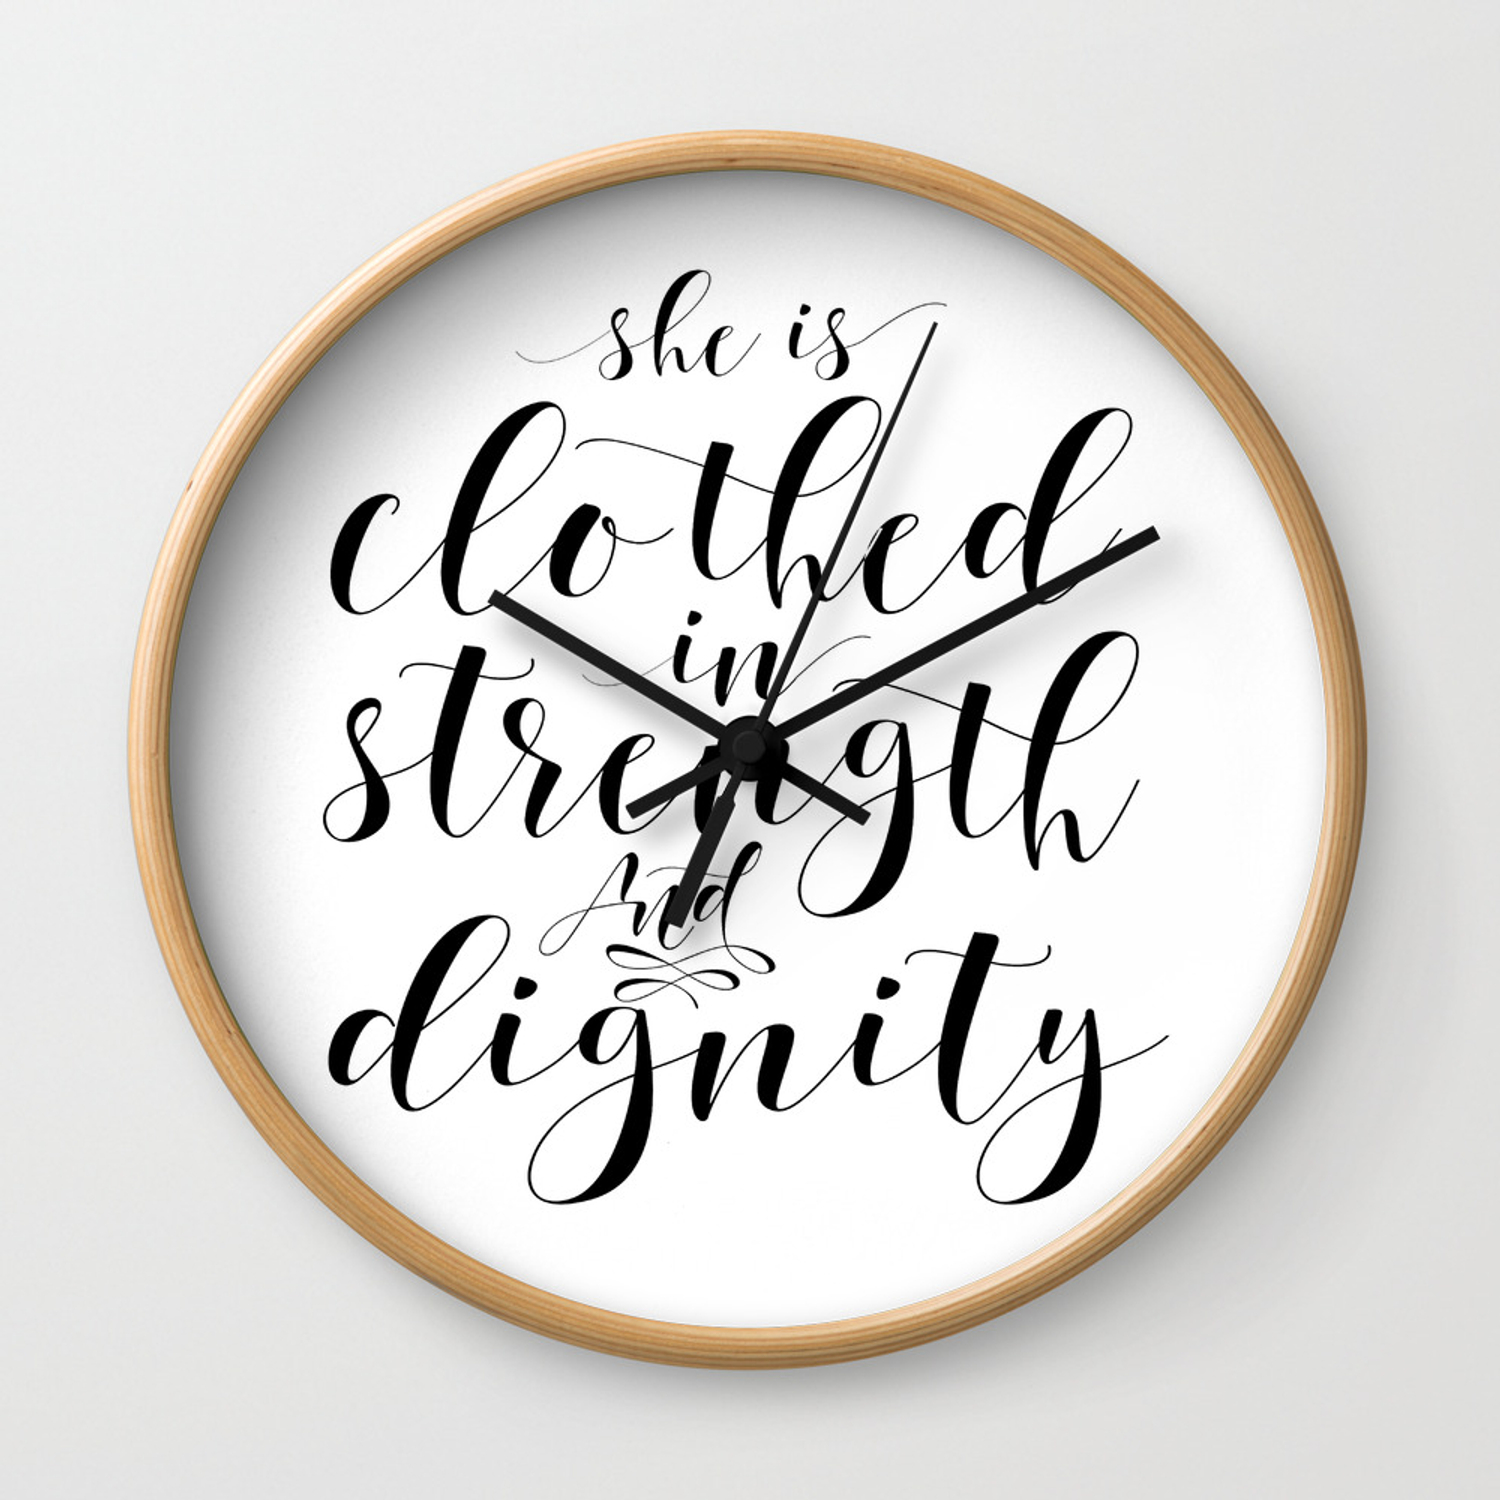 Nursery Room Decor S She Is Clothed In Strength And Dignity Verse Scripture Art Wall Clock